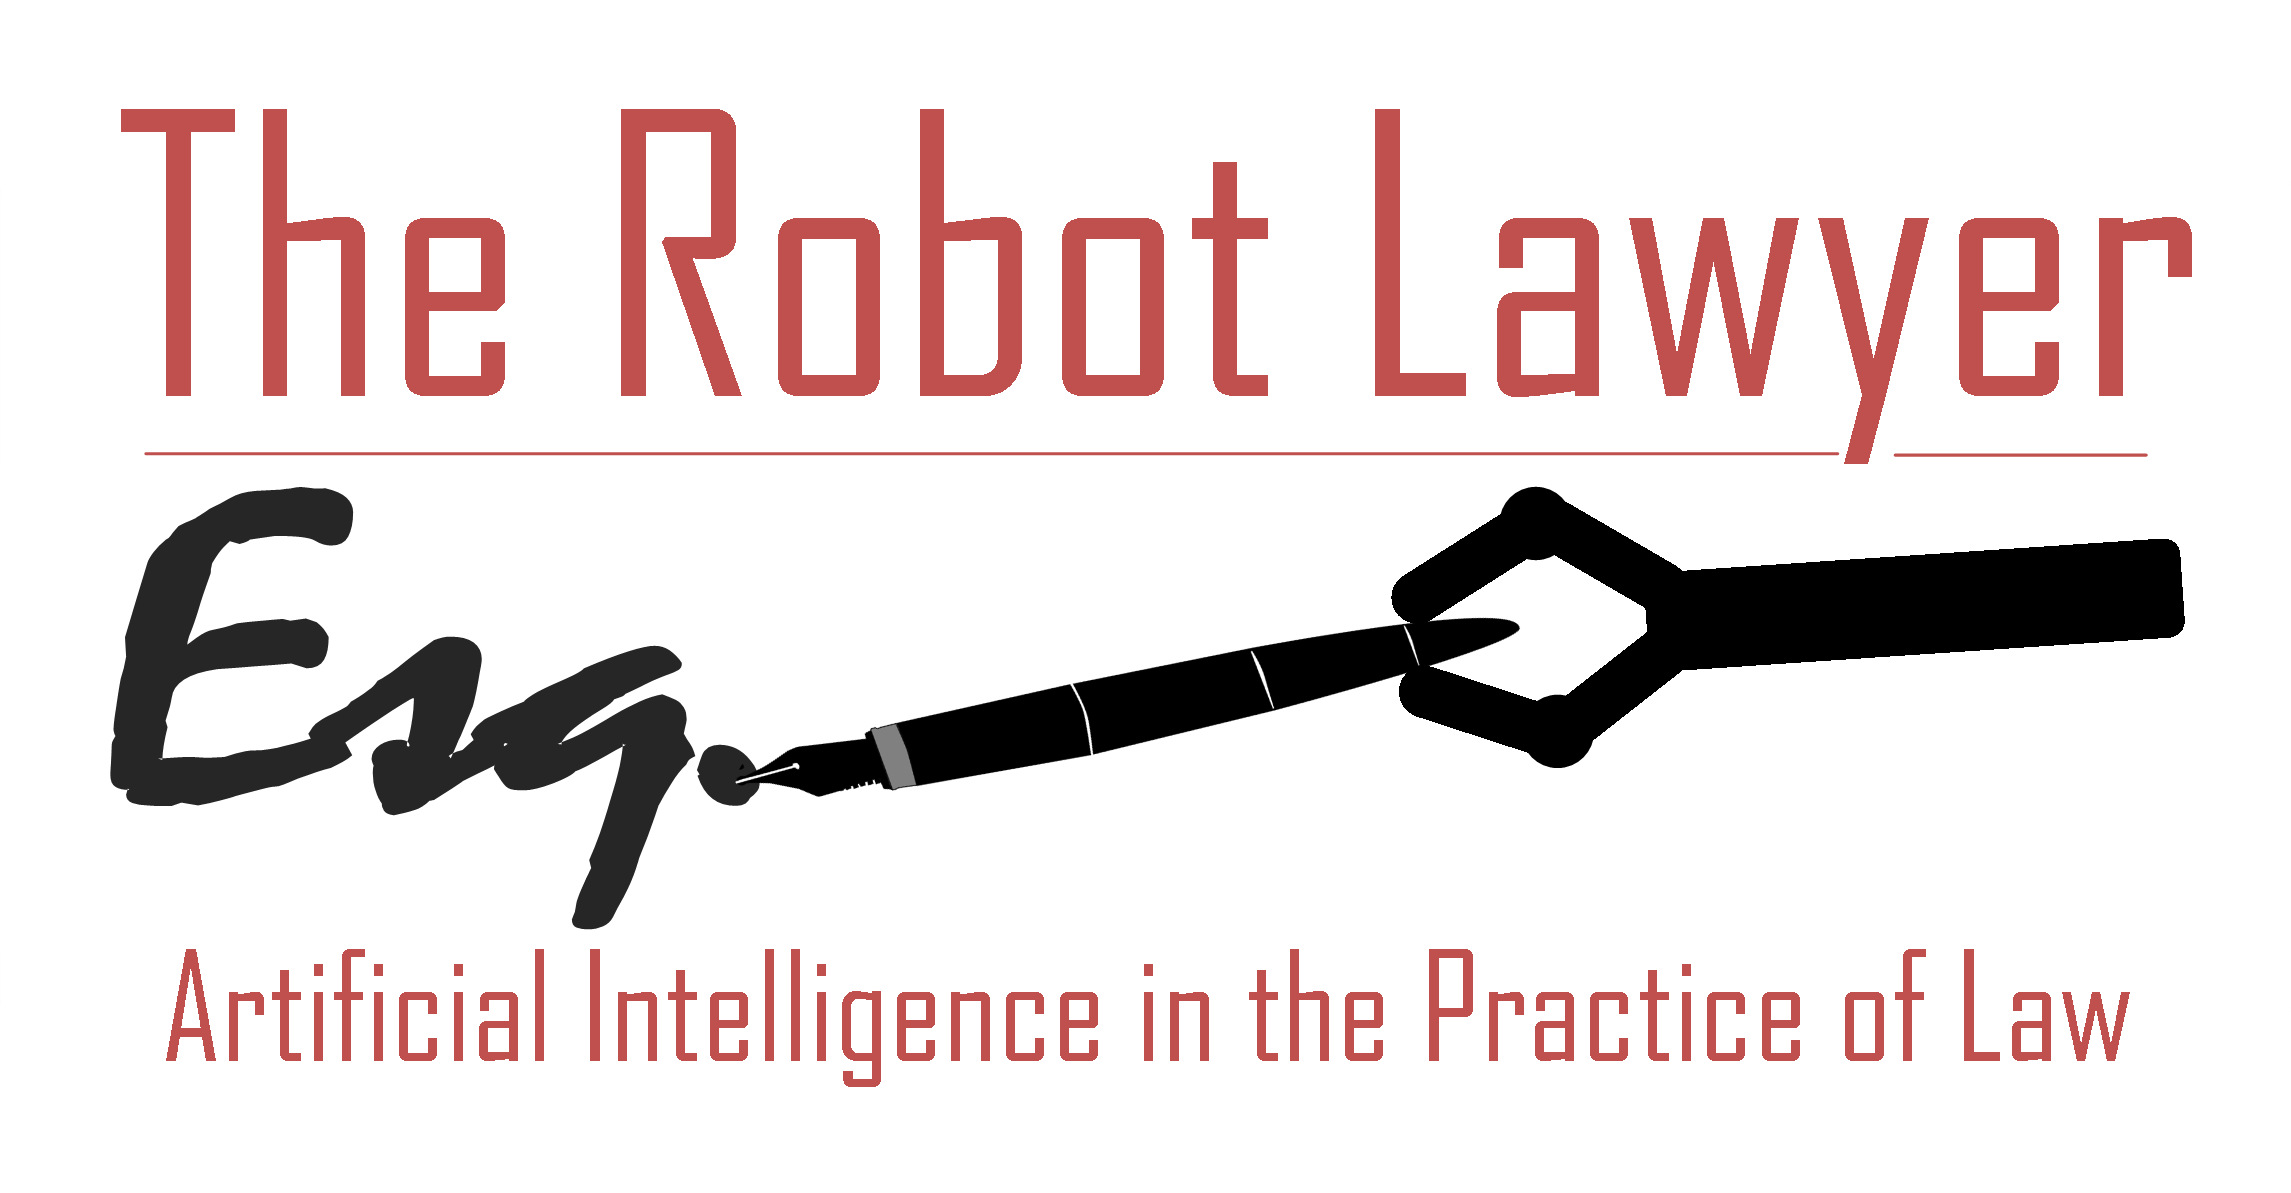 The Robot Lawyer: Artificial Intelligence in the Practice of Law, On-demand Learning CLE from the Harris County Law Library's Legal Tech Institute